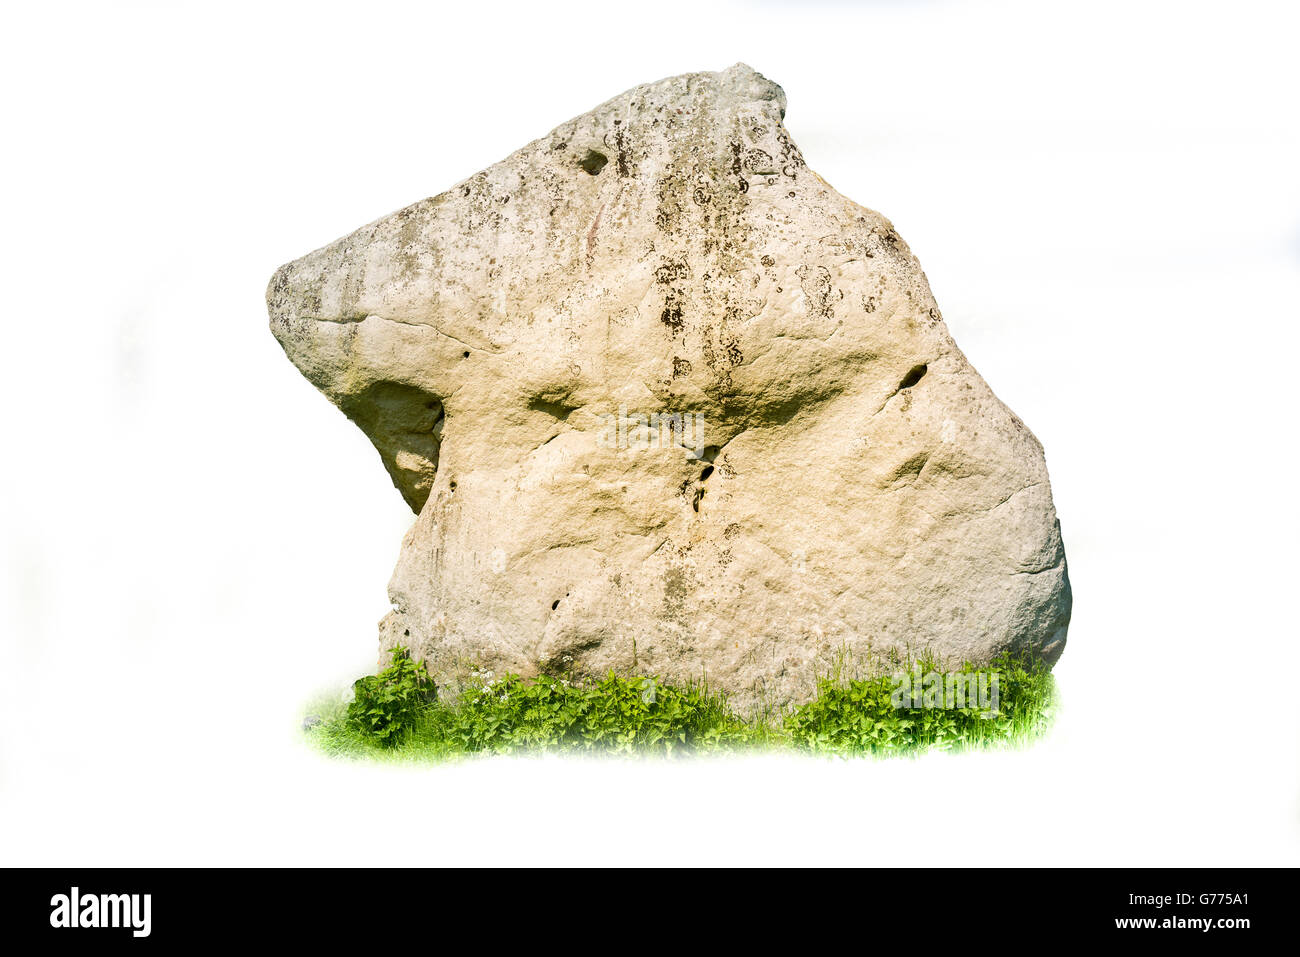 Monolithic Horse Shaped Stone Isolated on White with Grass - Stock Image